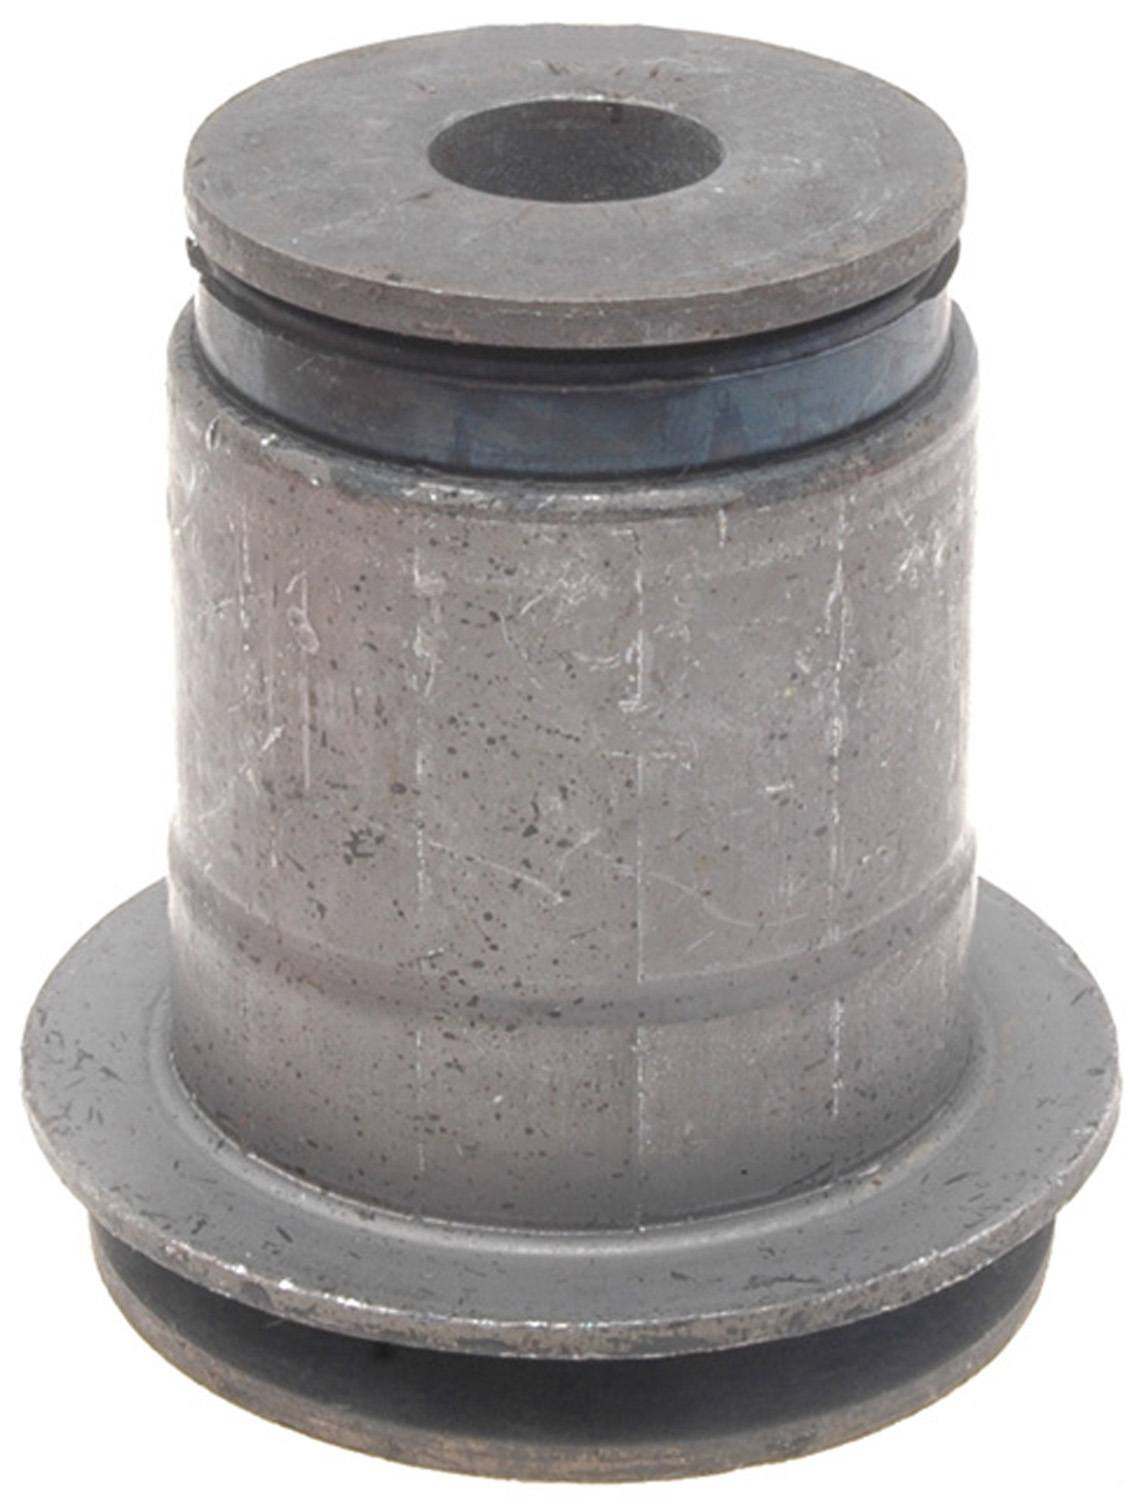 ACDELCO PROFESSIONAL - Suspension Control Arm Bushing - DCC 45G1389